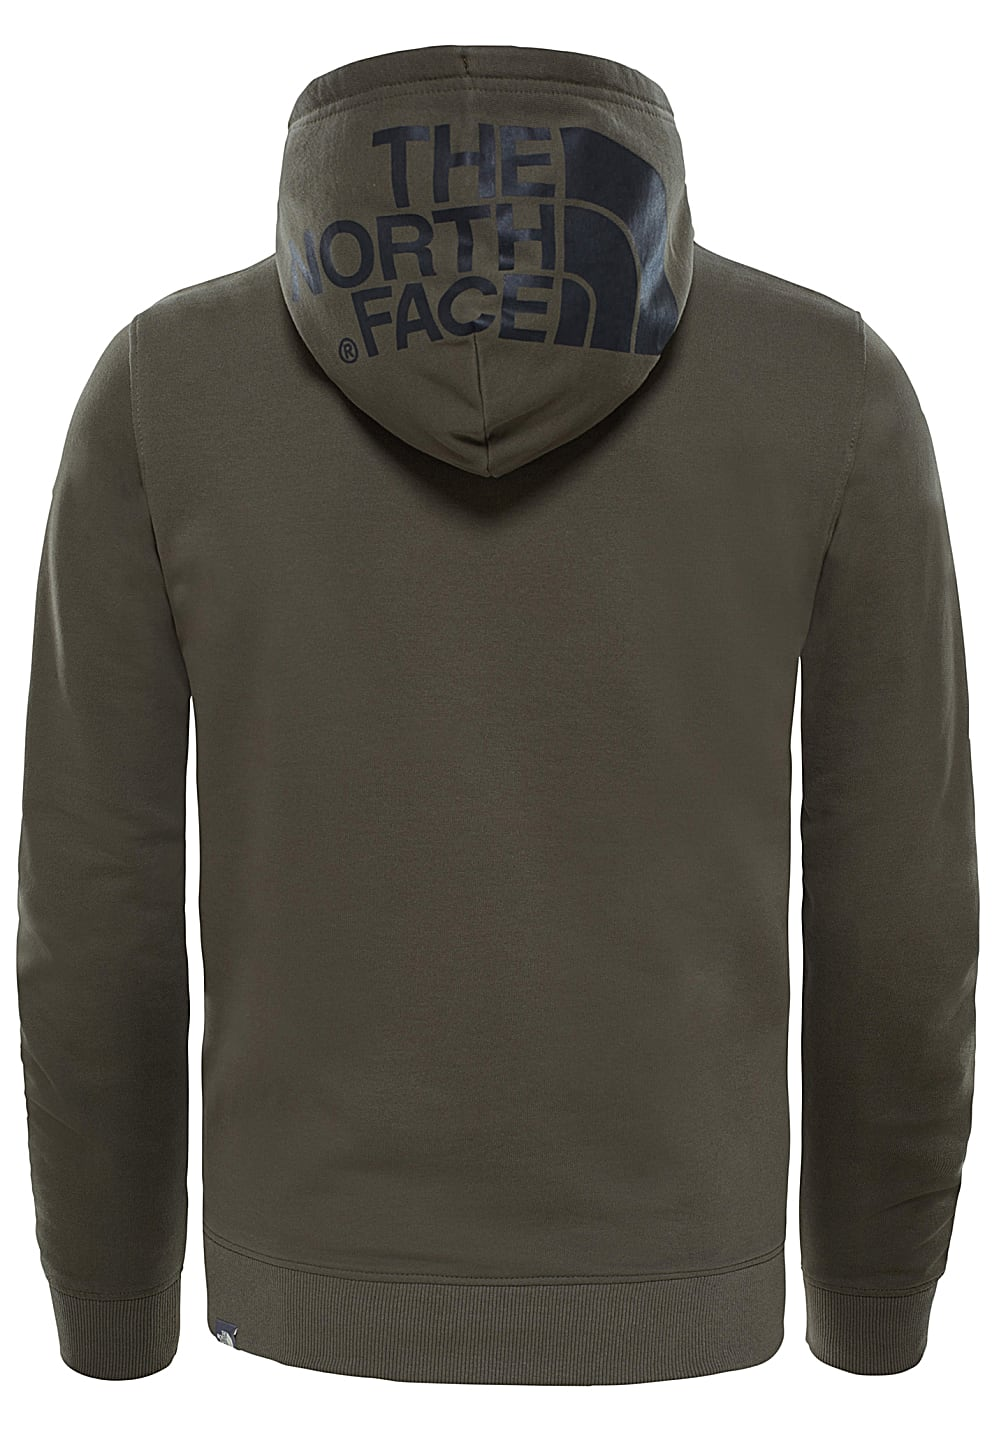 d7367def1d THE NORTH FACE Seasonal Drew Peak Light - Felpa con cappuccio per Uomo -  Verde